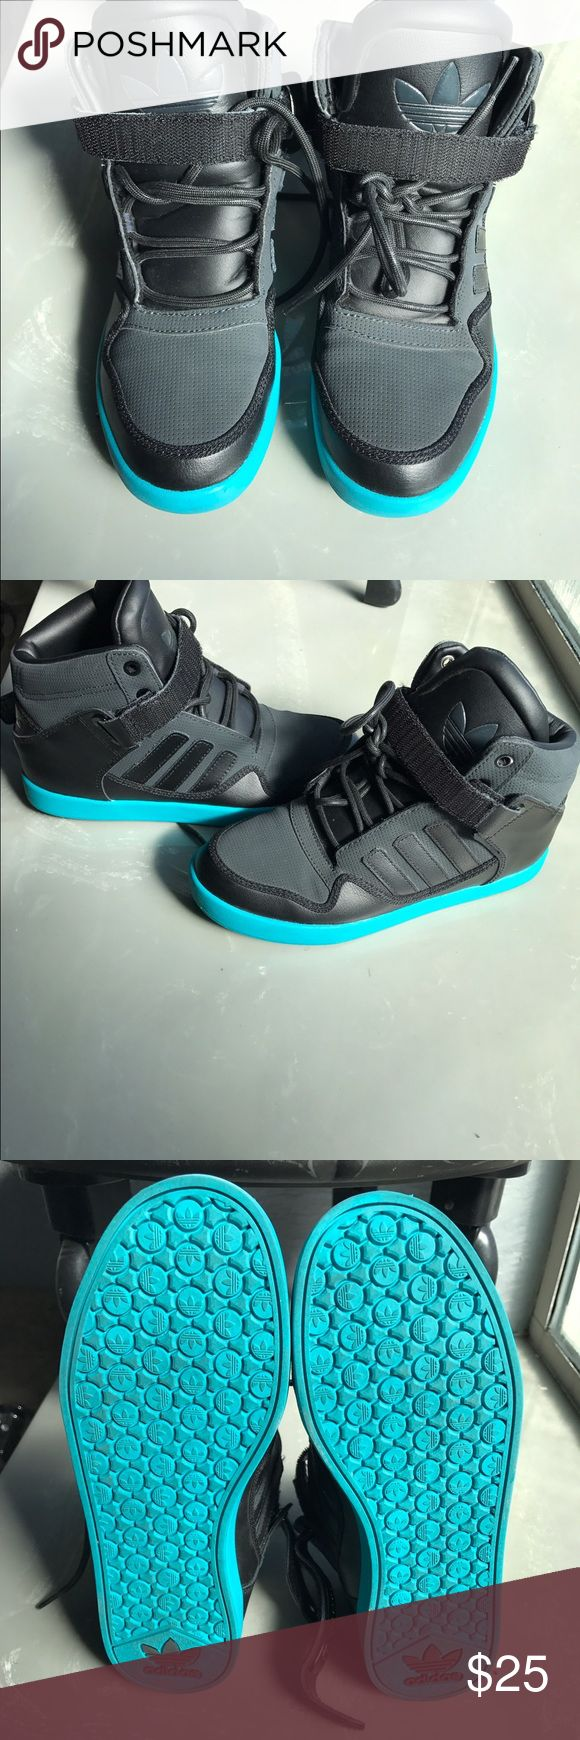 Adidas high tops Black adidas high tops with turquoise bottom. Size 4.5 in children's. I wear a size 6- 6.5 in women's normally. Worn twice. Like new. Adidas Shoes Sneakers